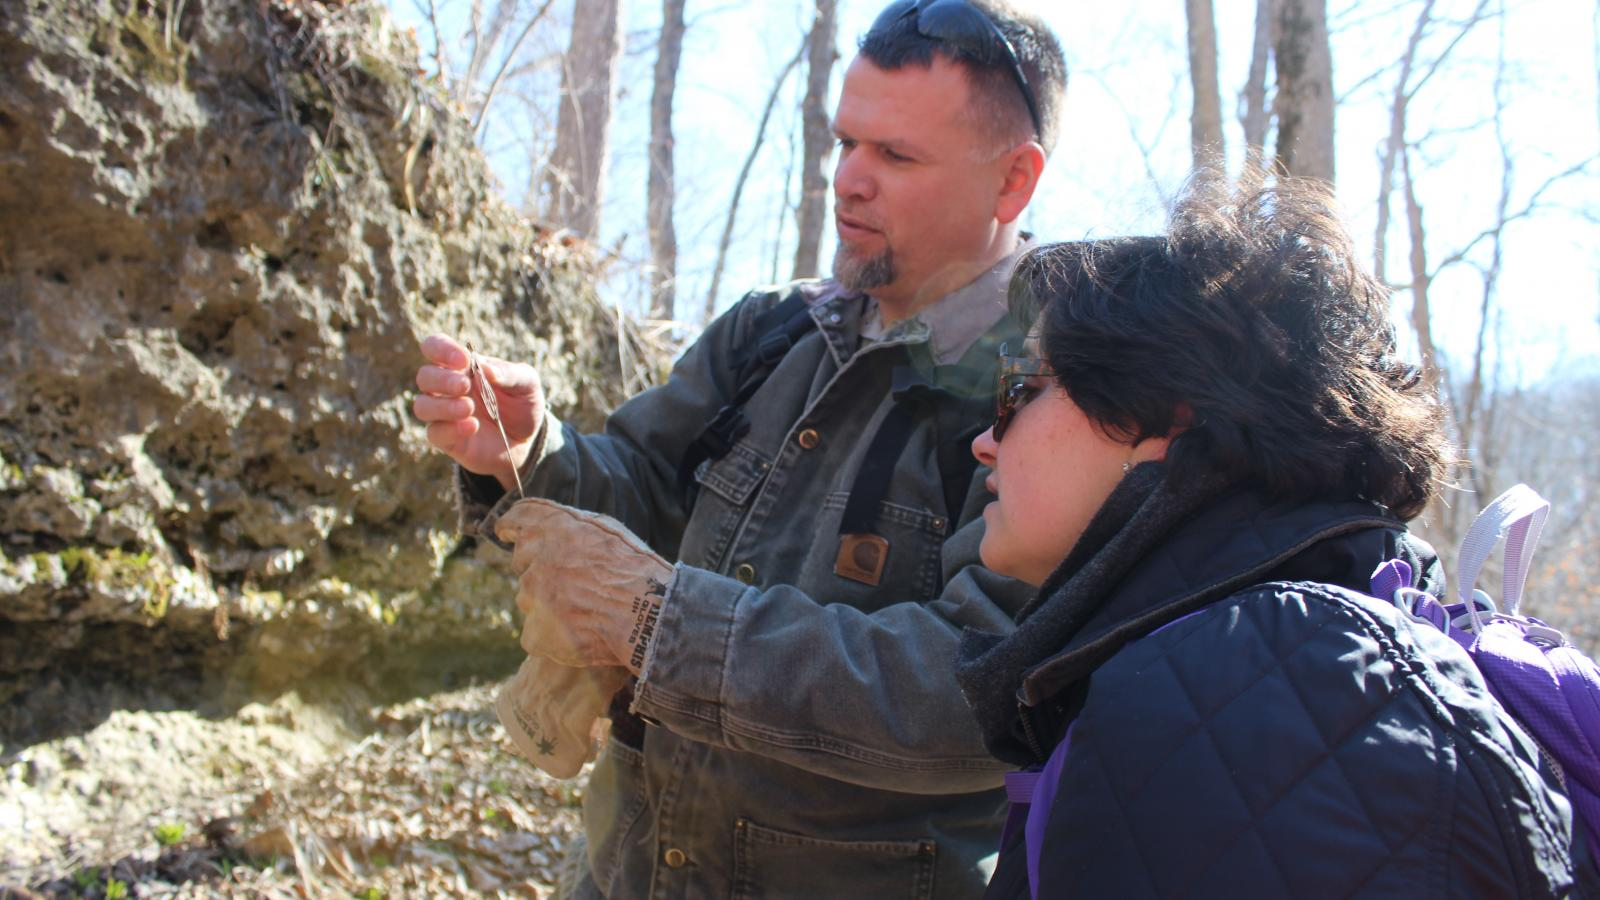 Josh Deemer chats with Cassie Patterson during a hike at Miller Sanctuary State Nature Preserve.